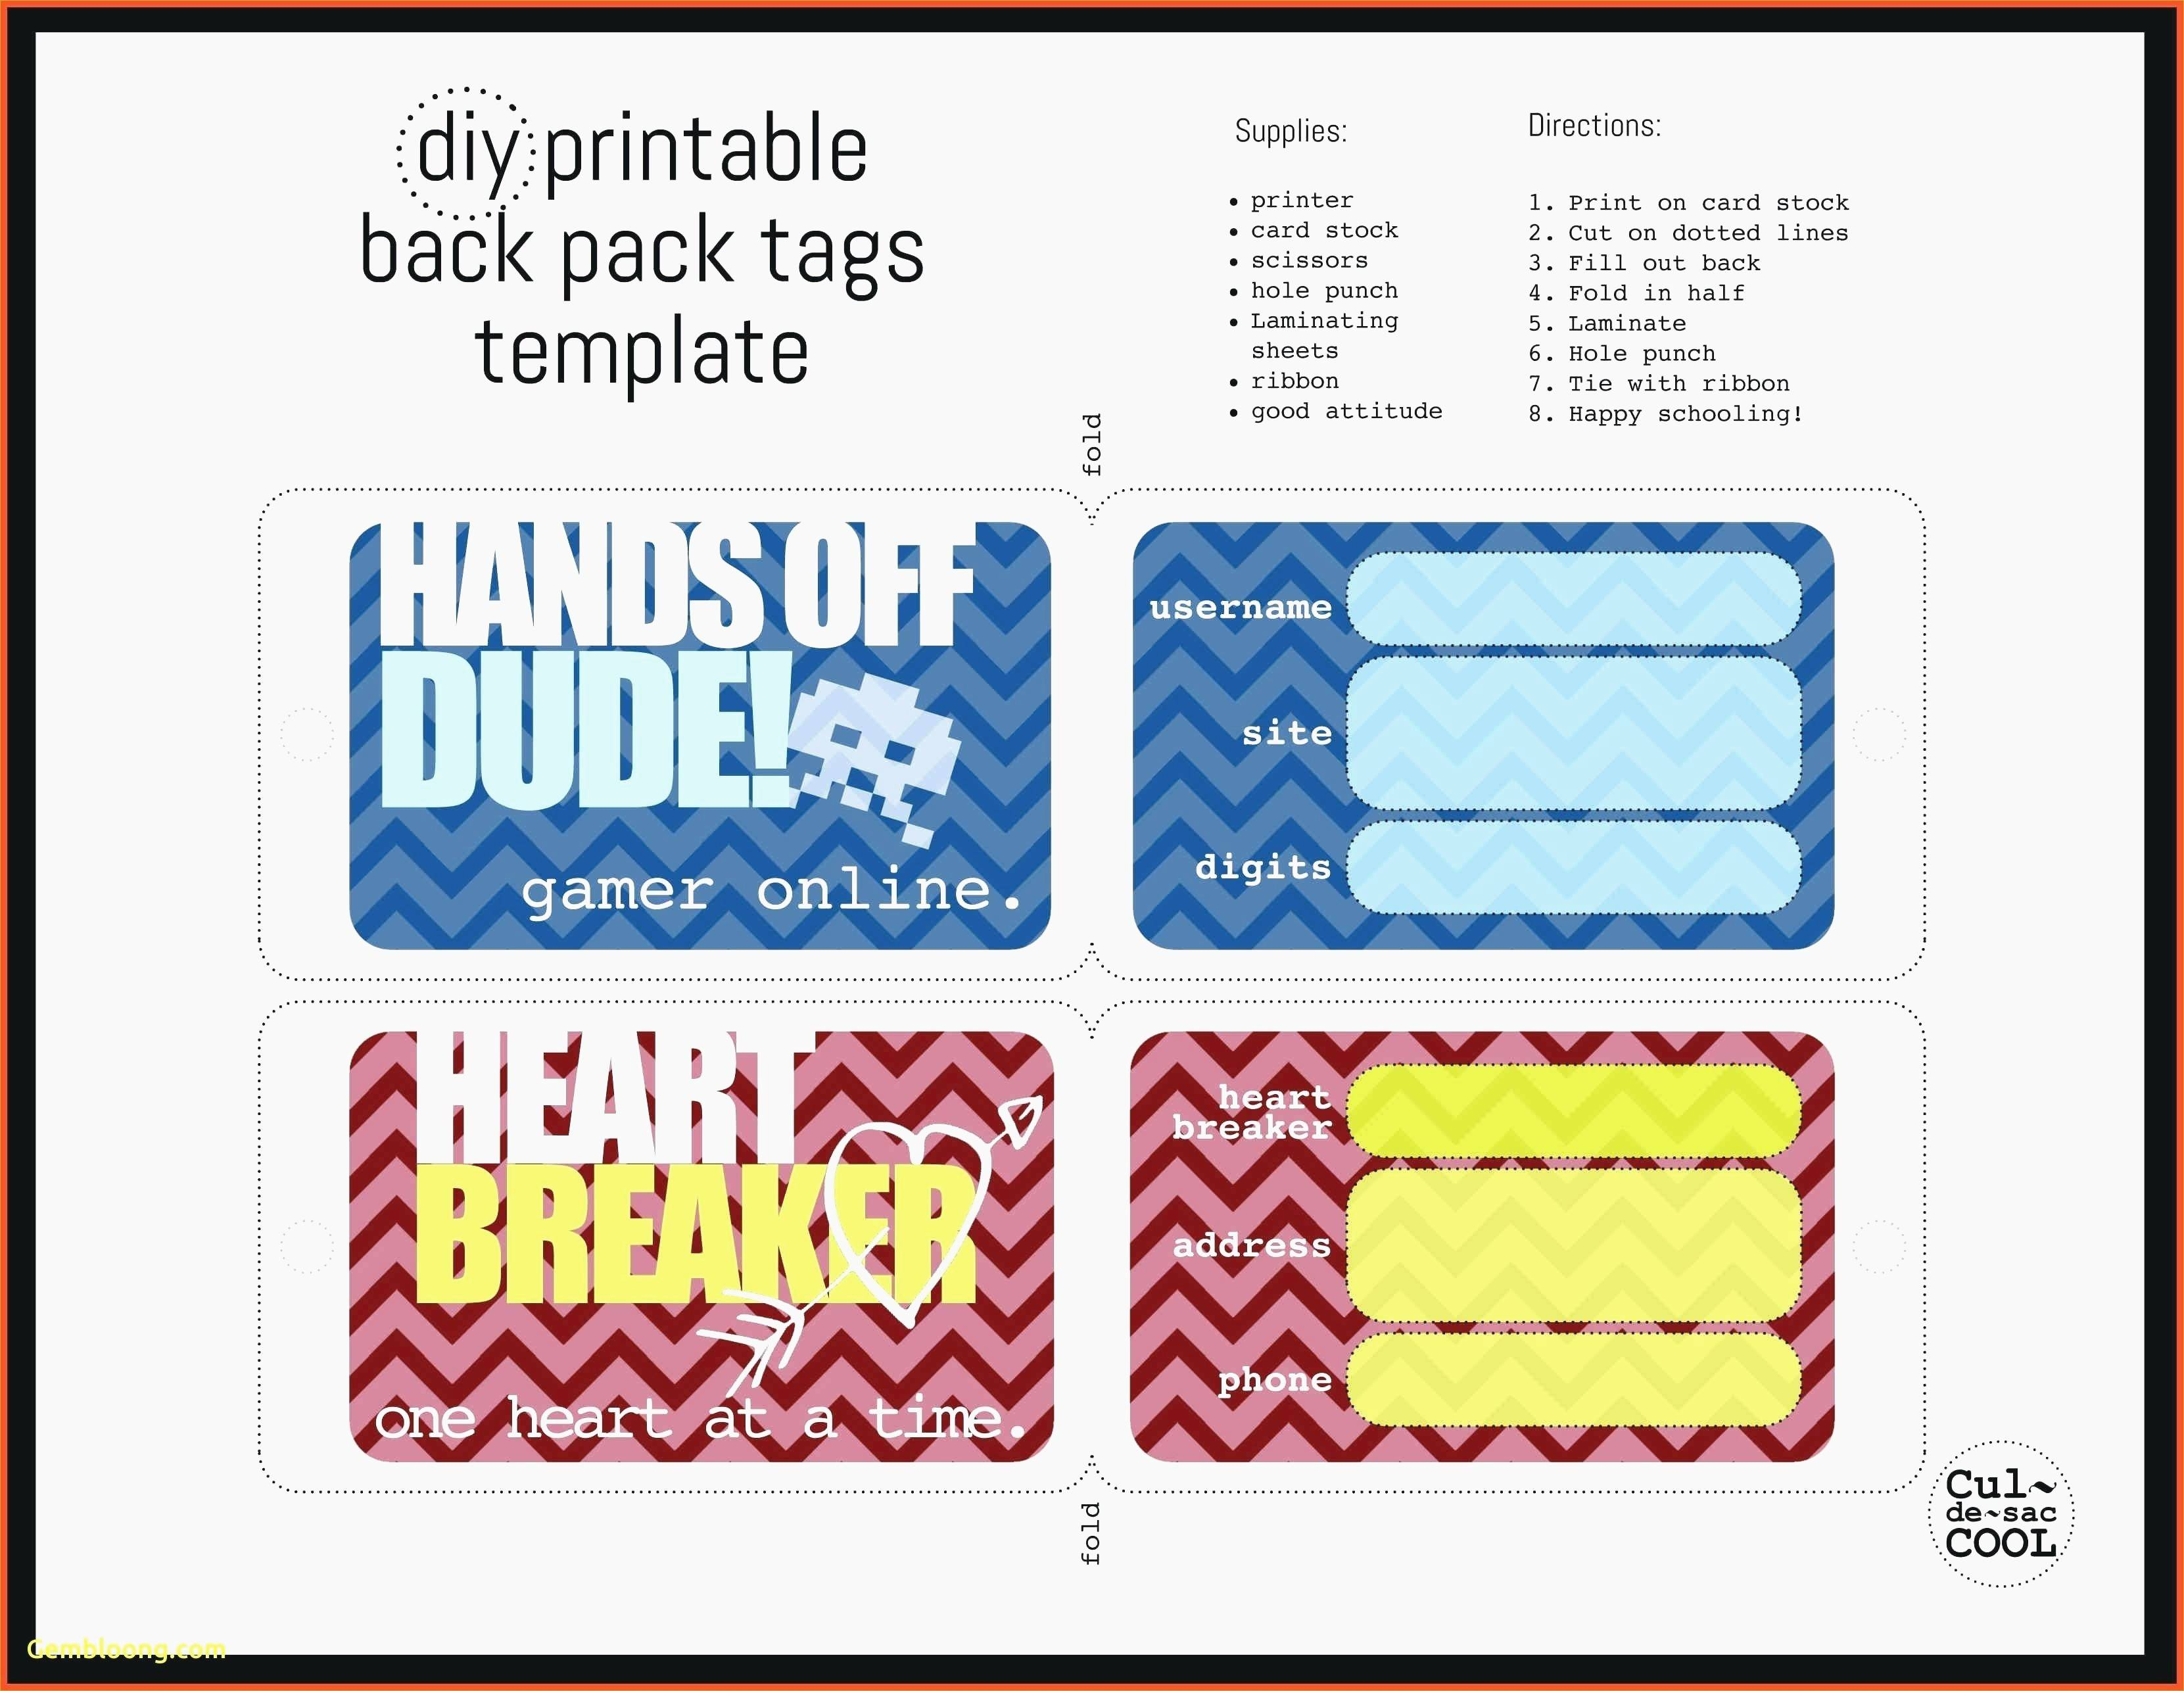 image relating to Printable Luggage Tag called Printable Bags Tag Template - Templates #MTI0NzM0